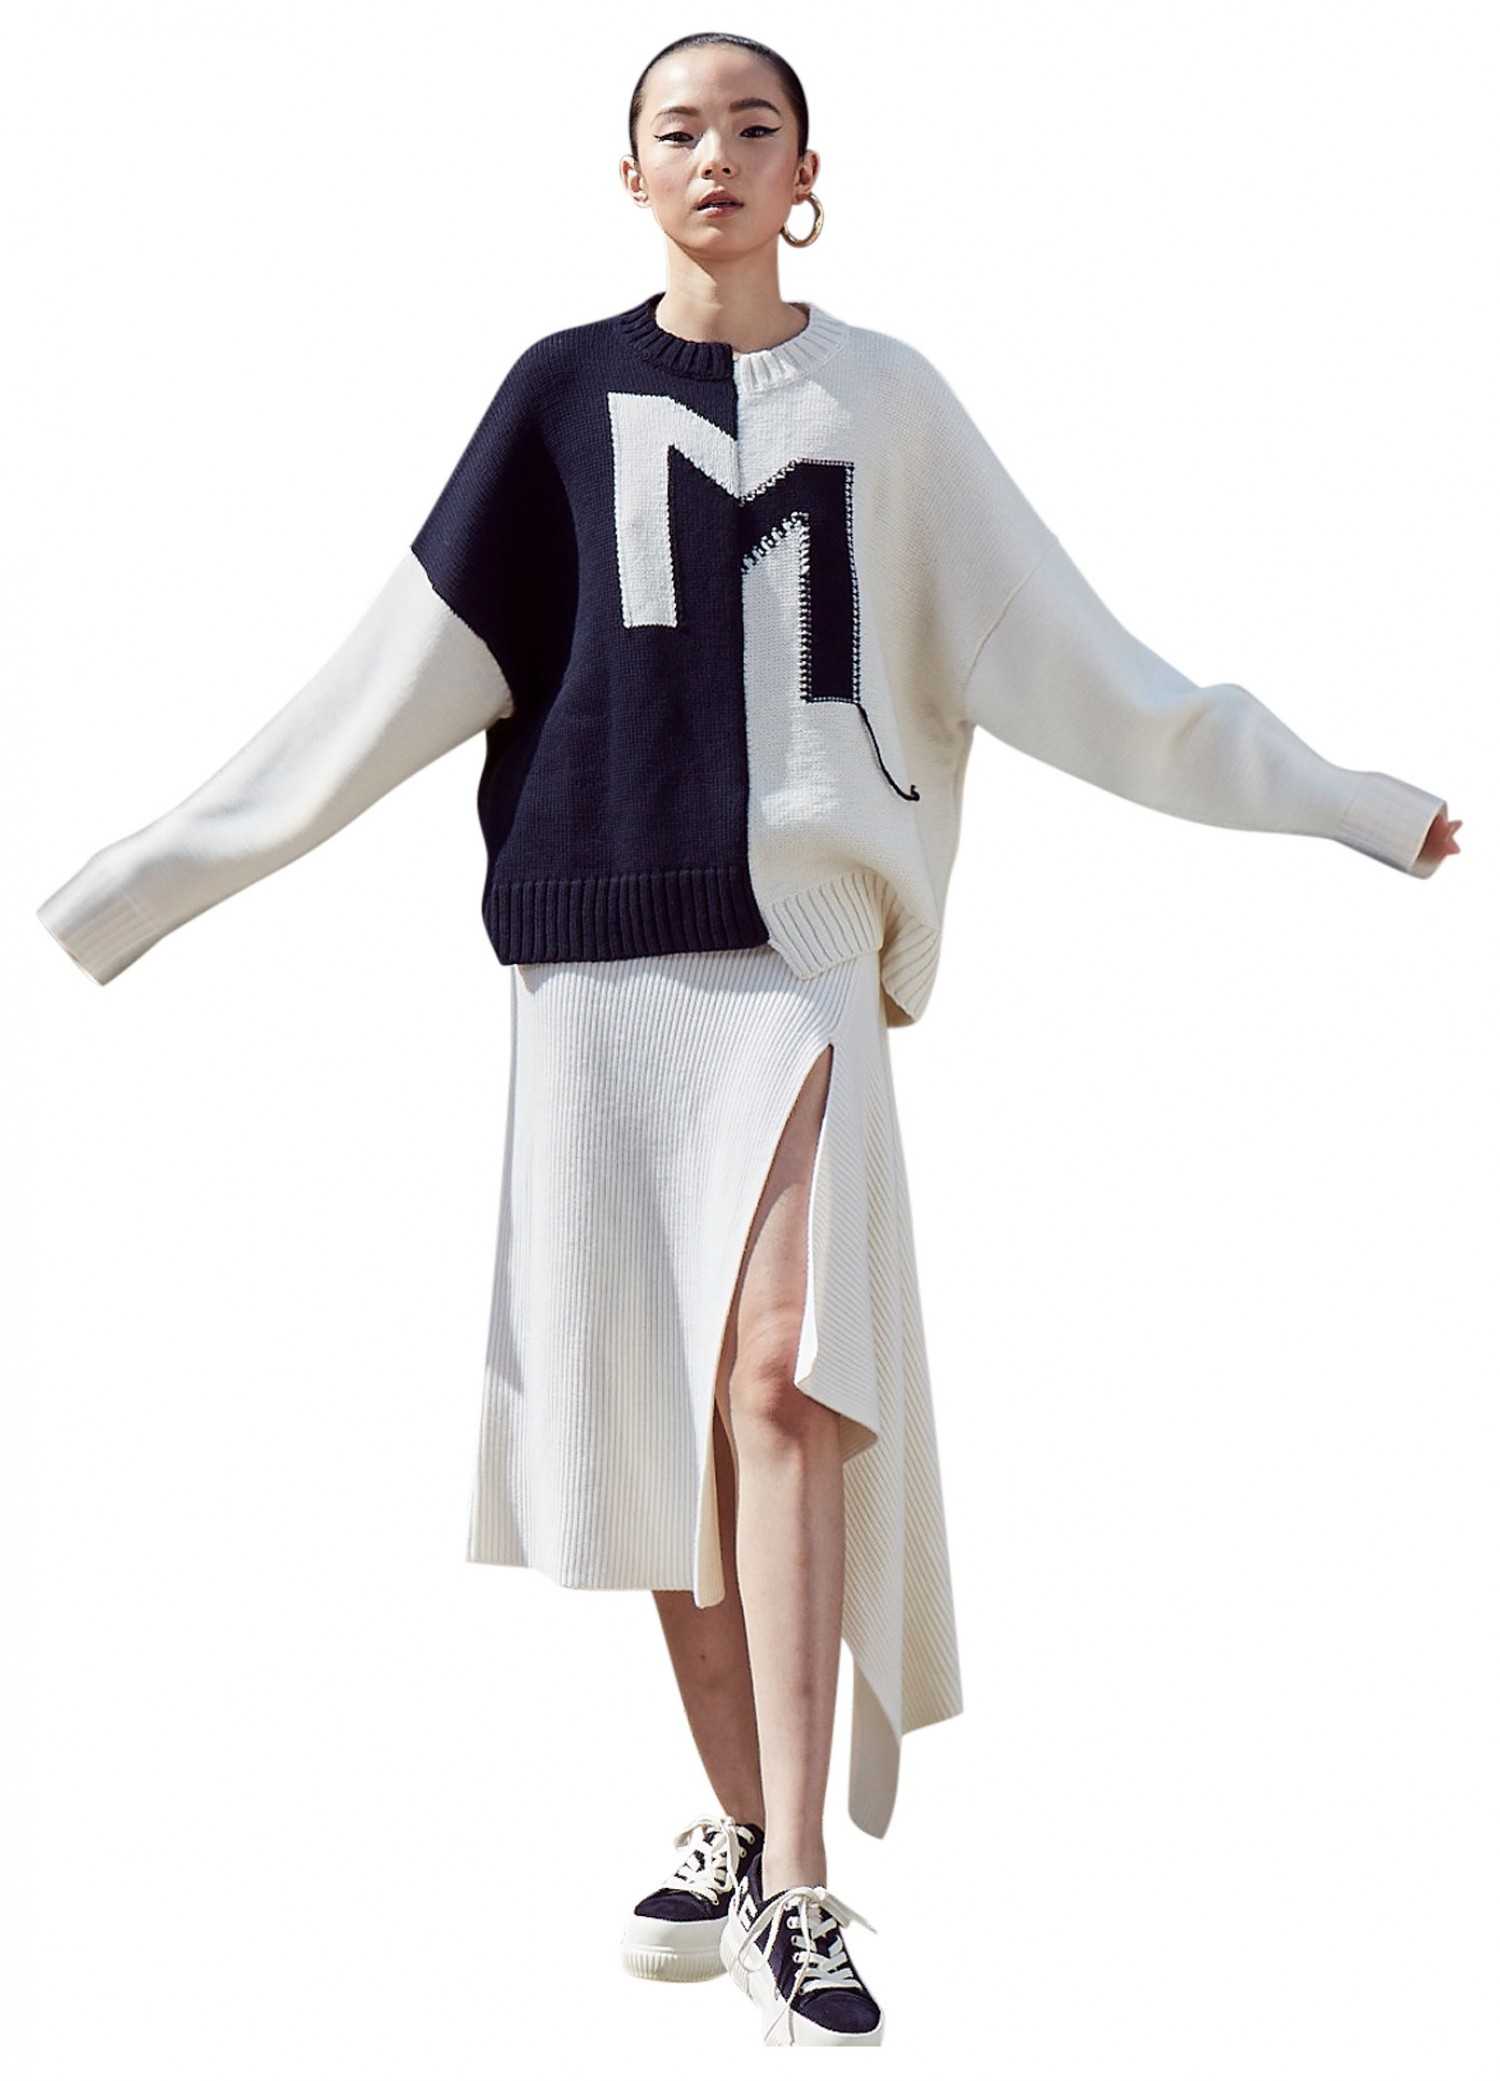 MONSE Sliced Ribbed Knit Skirt in Ivory on Model Front View